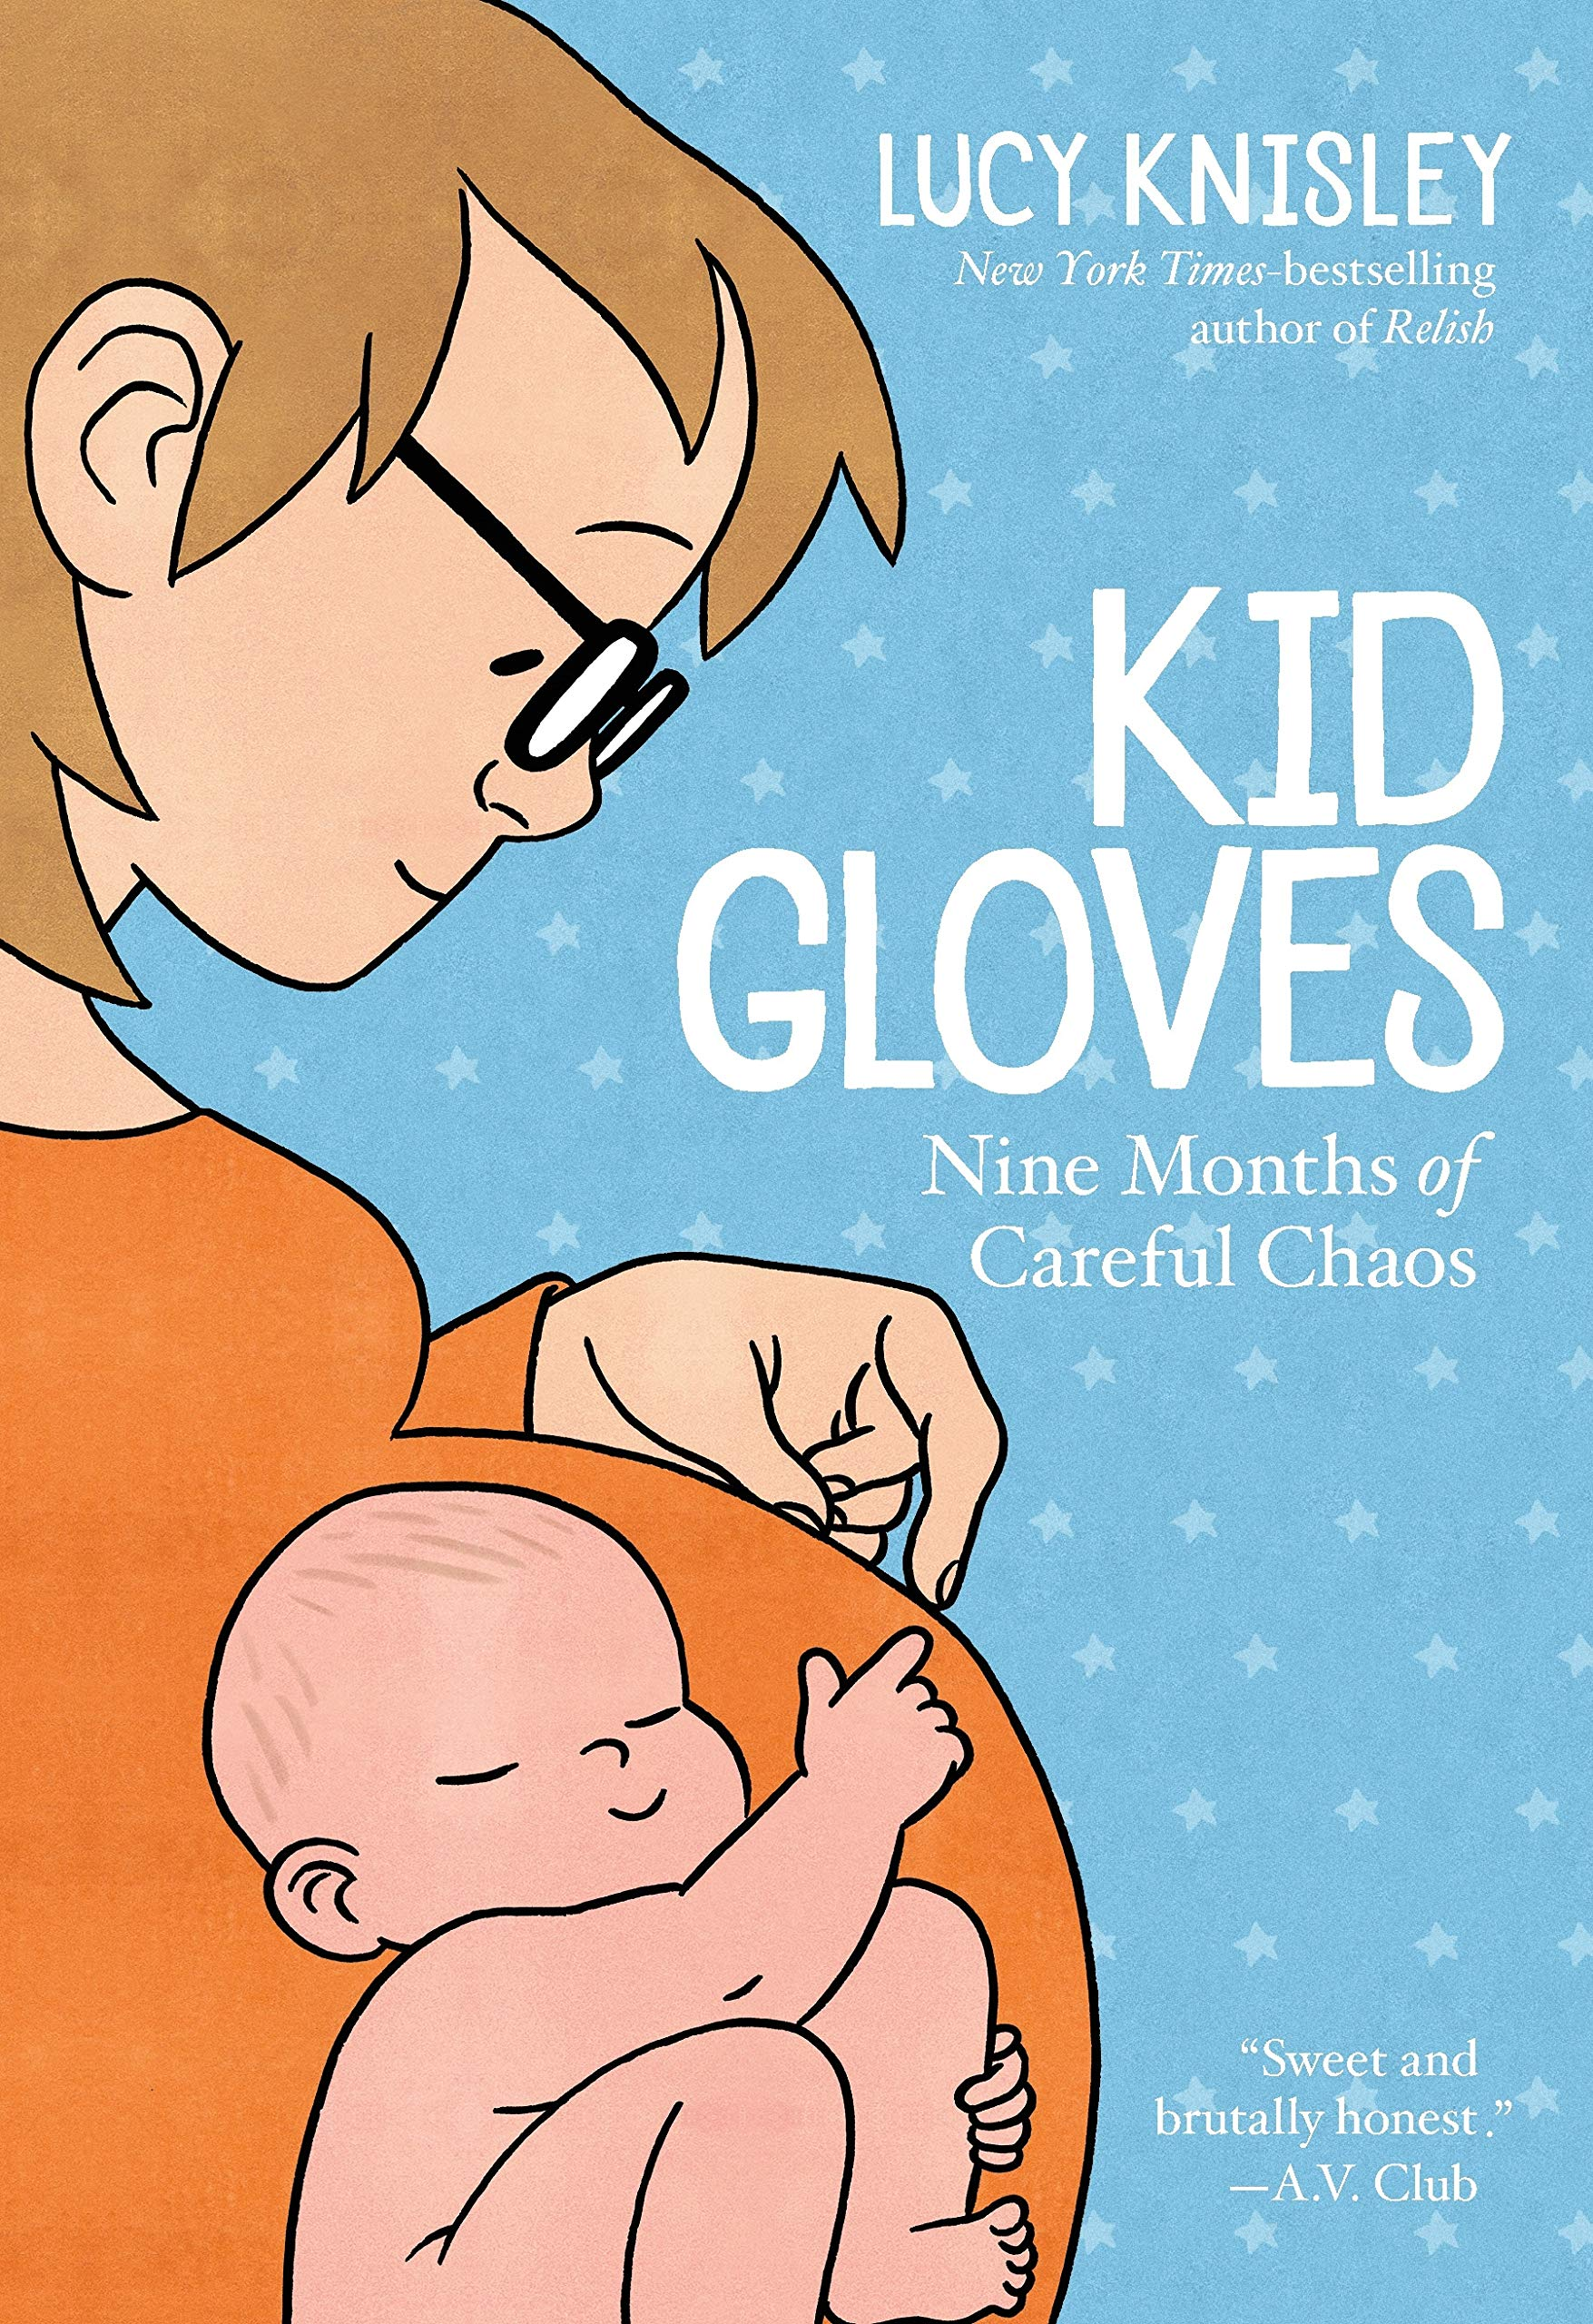 Kid Gloves: Nine Months of Careful Chaos: Knisley, Lucy, Knisley, Illustrated image of a pregnant mother with baby inside her belly